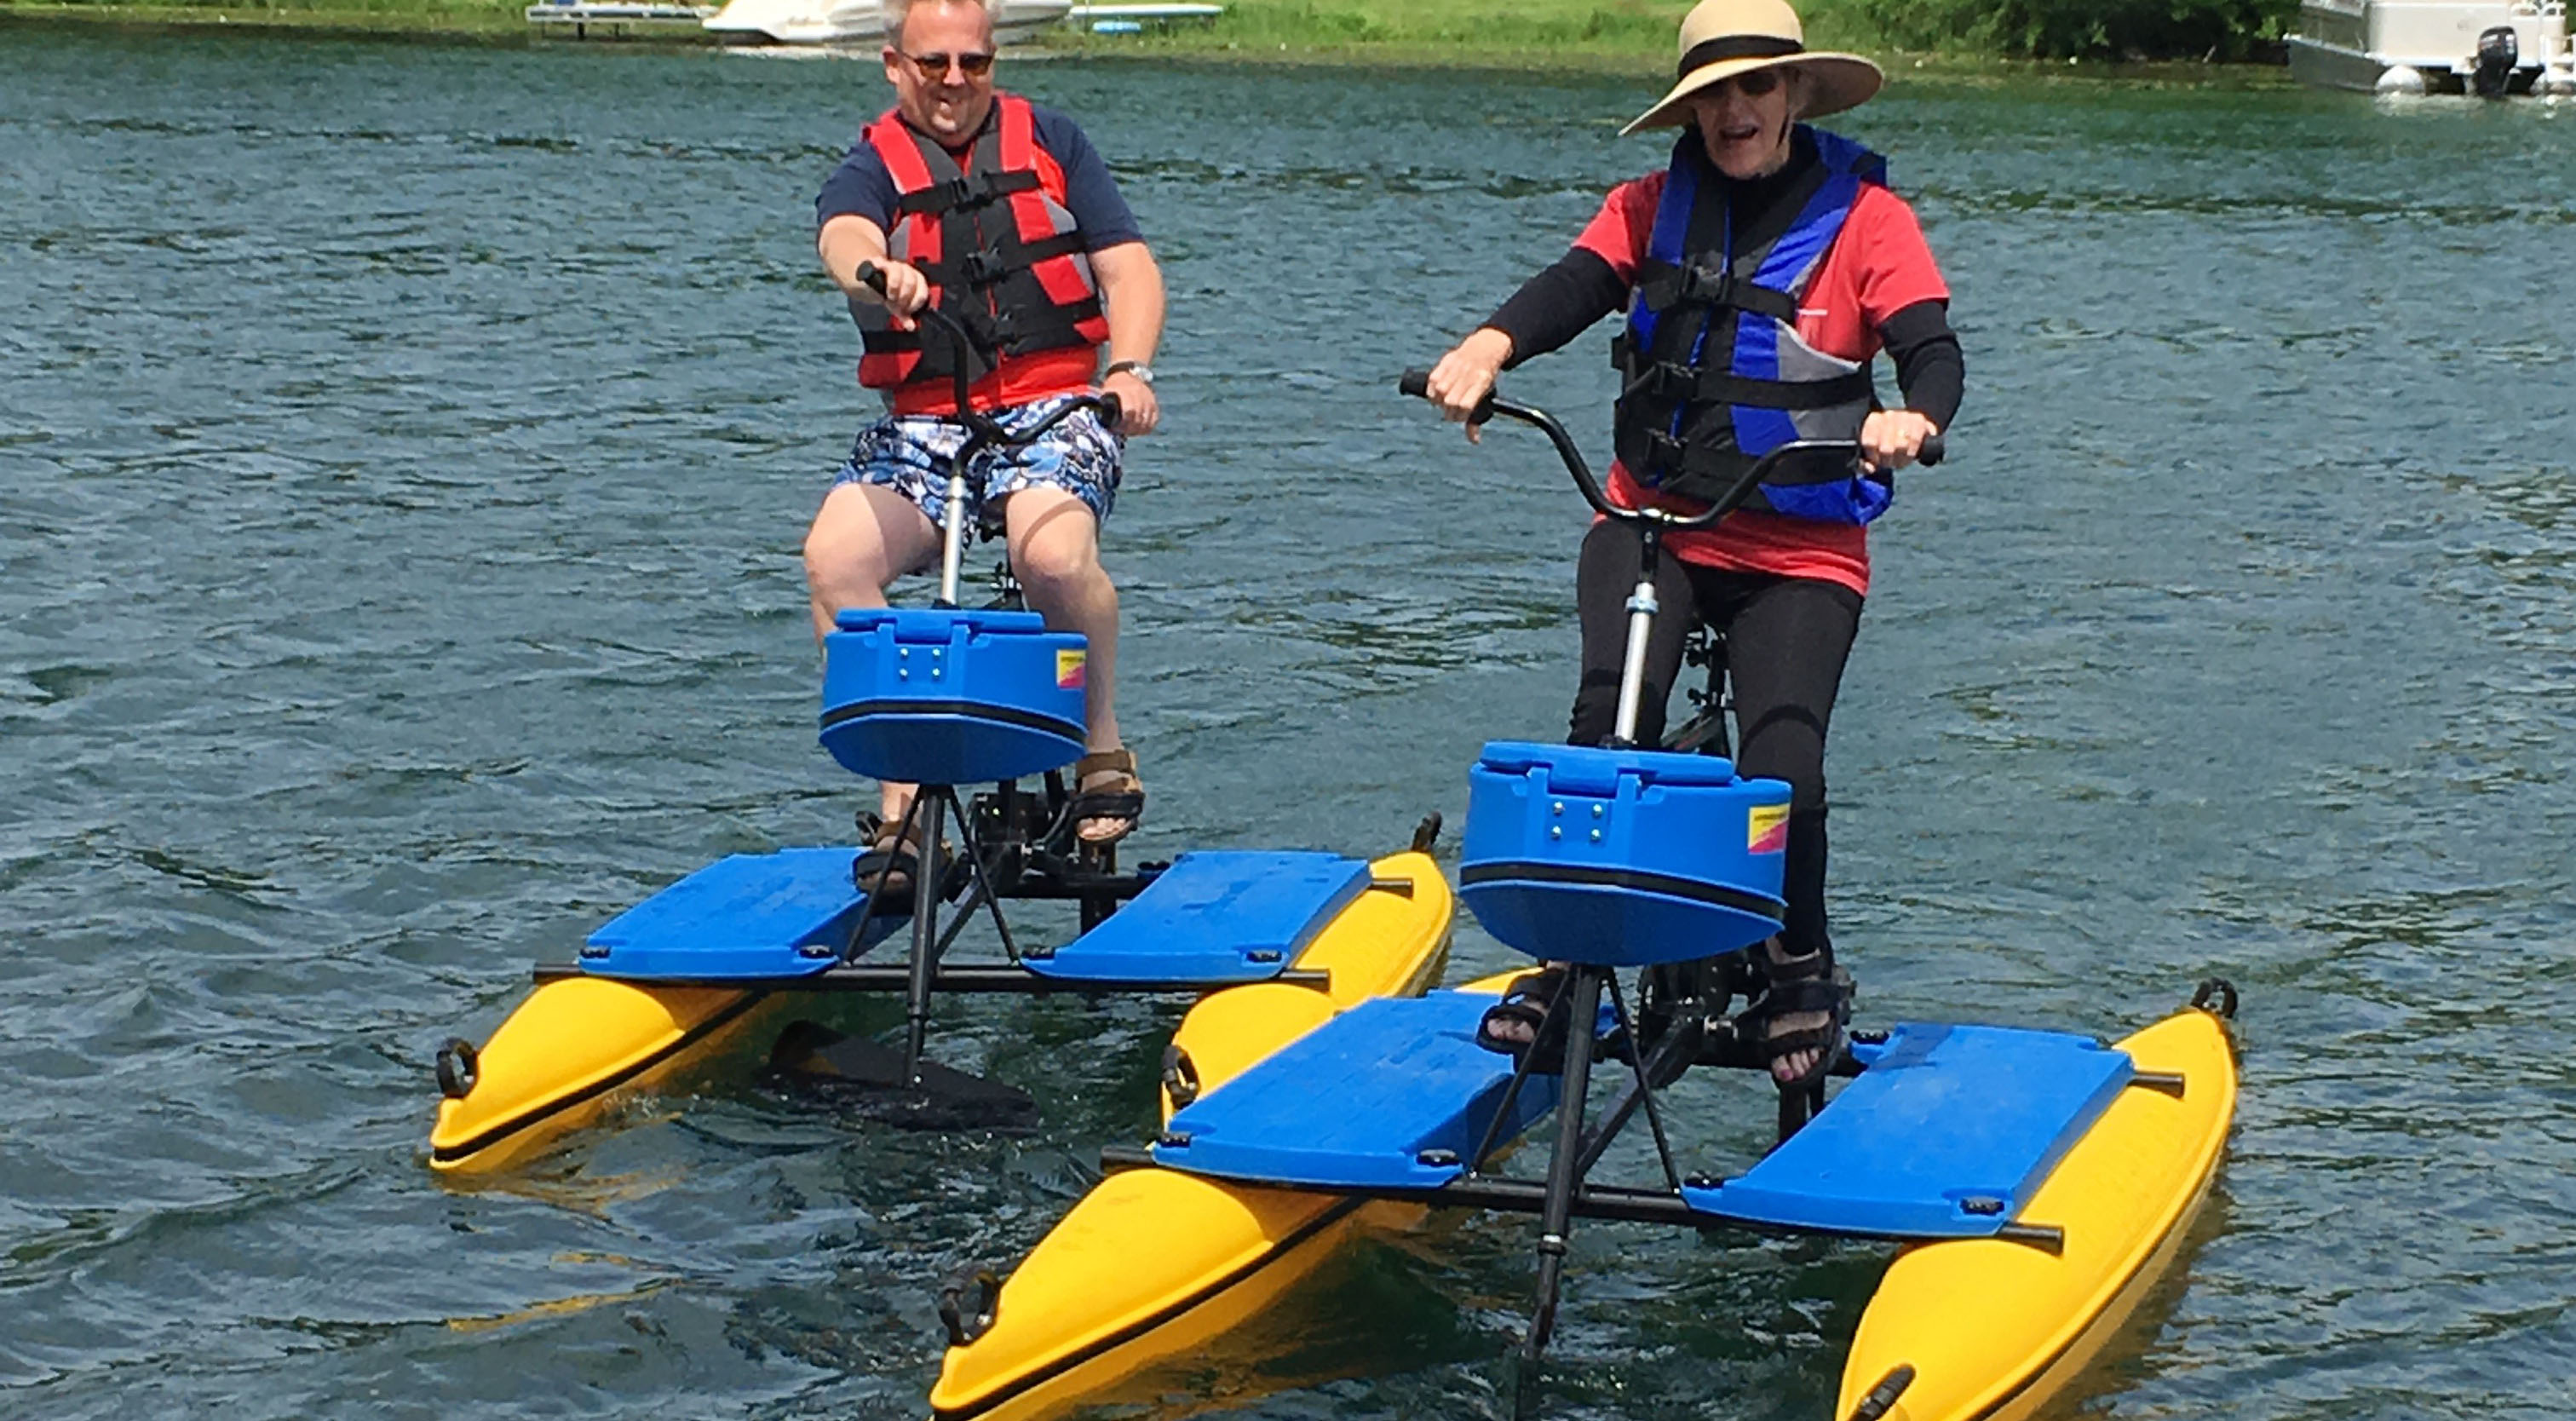 2 people on waterbikes